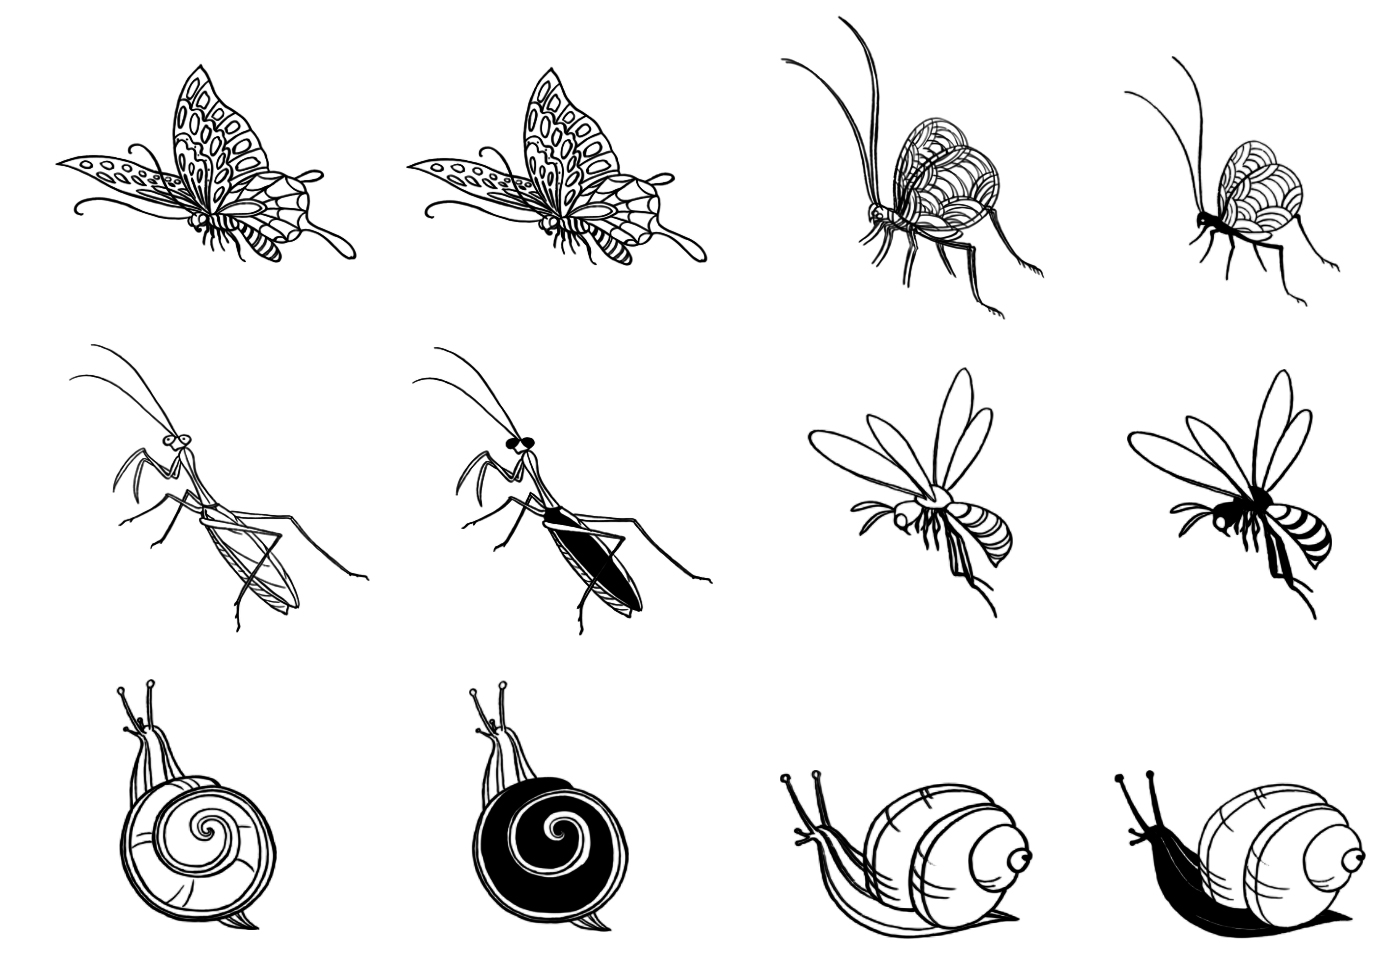 Dibujos De Insectos Para Colorear: Hand Drawn Insect Brushes Pack